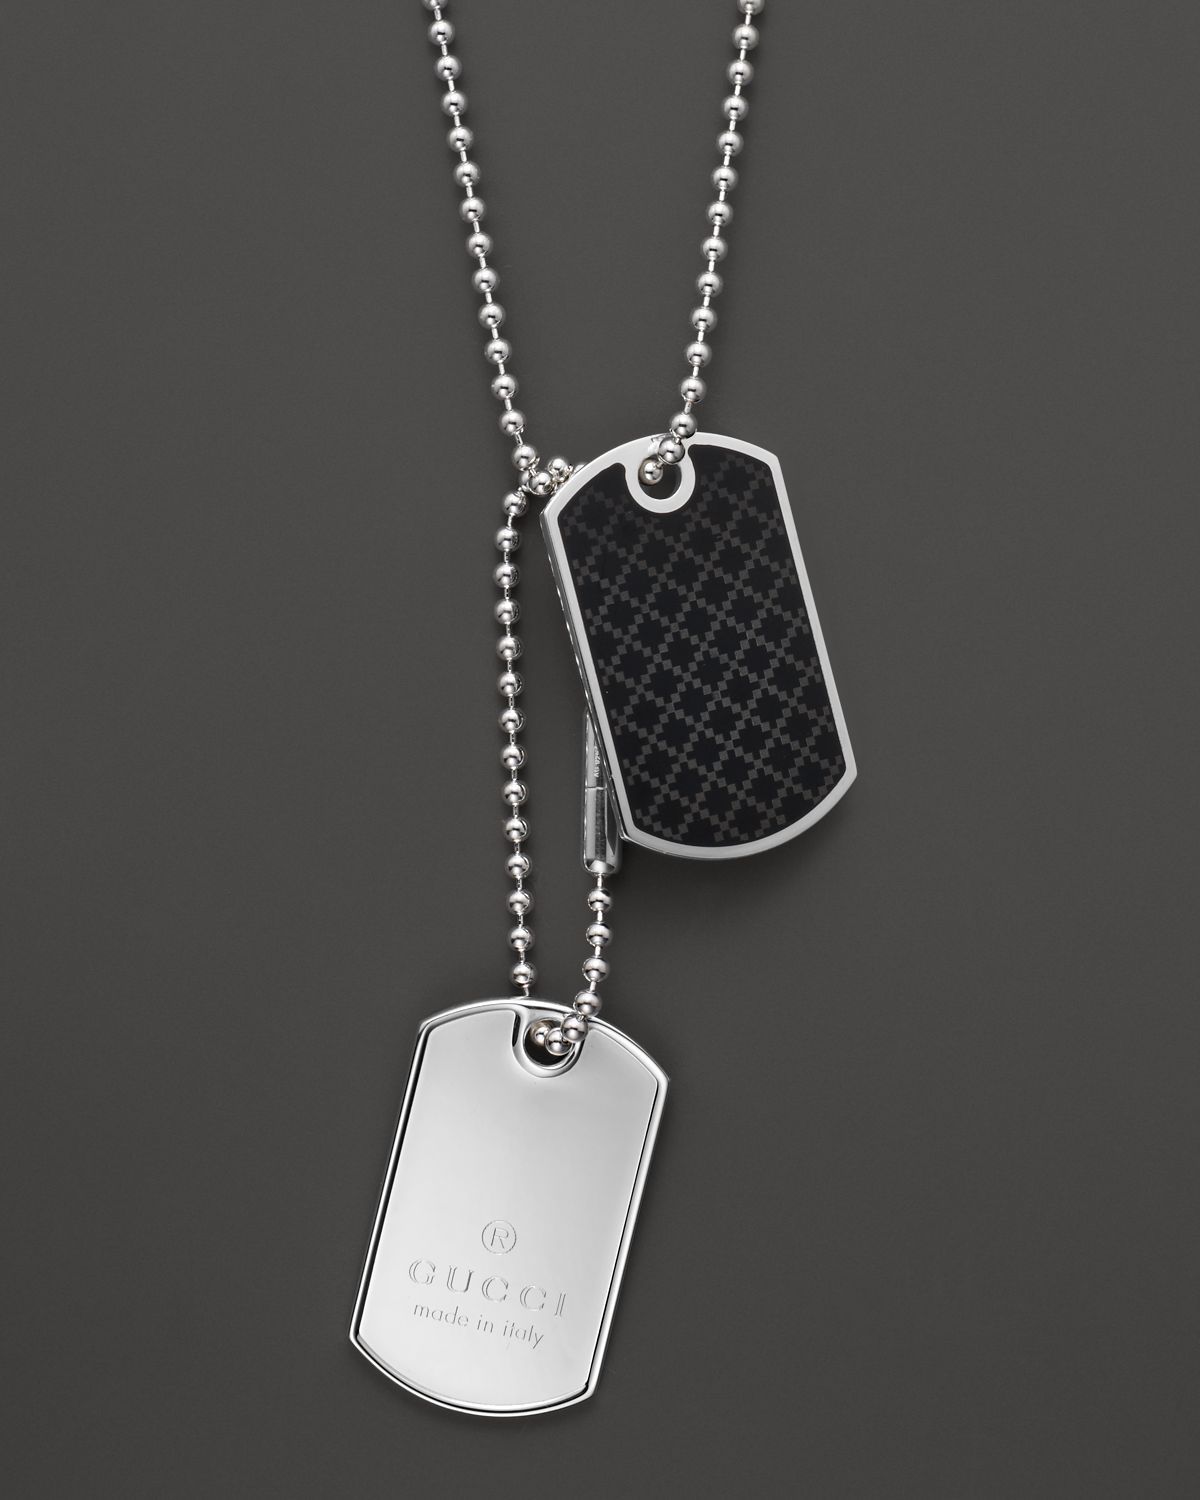 gucci dog tag necklace 236 in metallic for men lyst